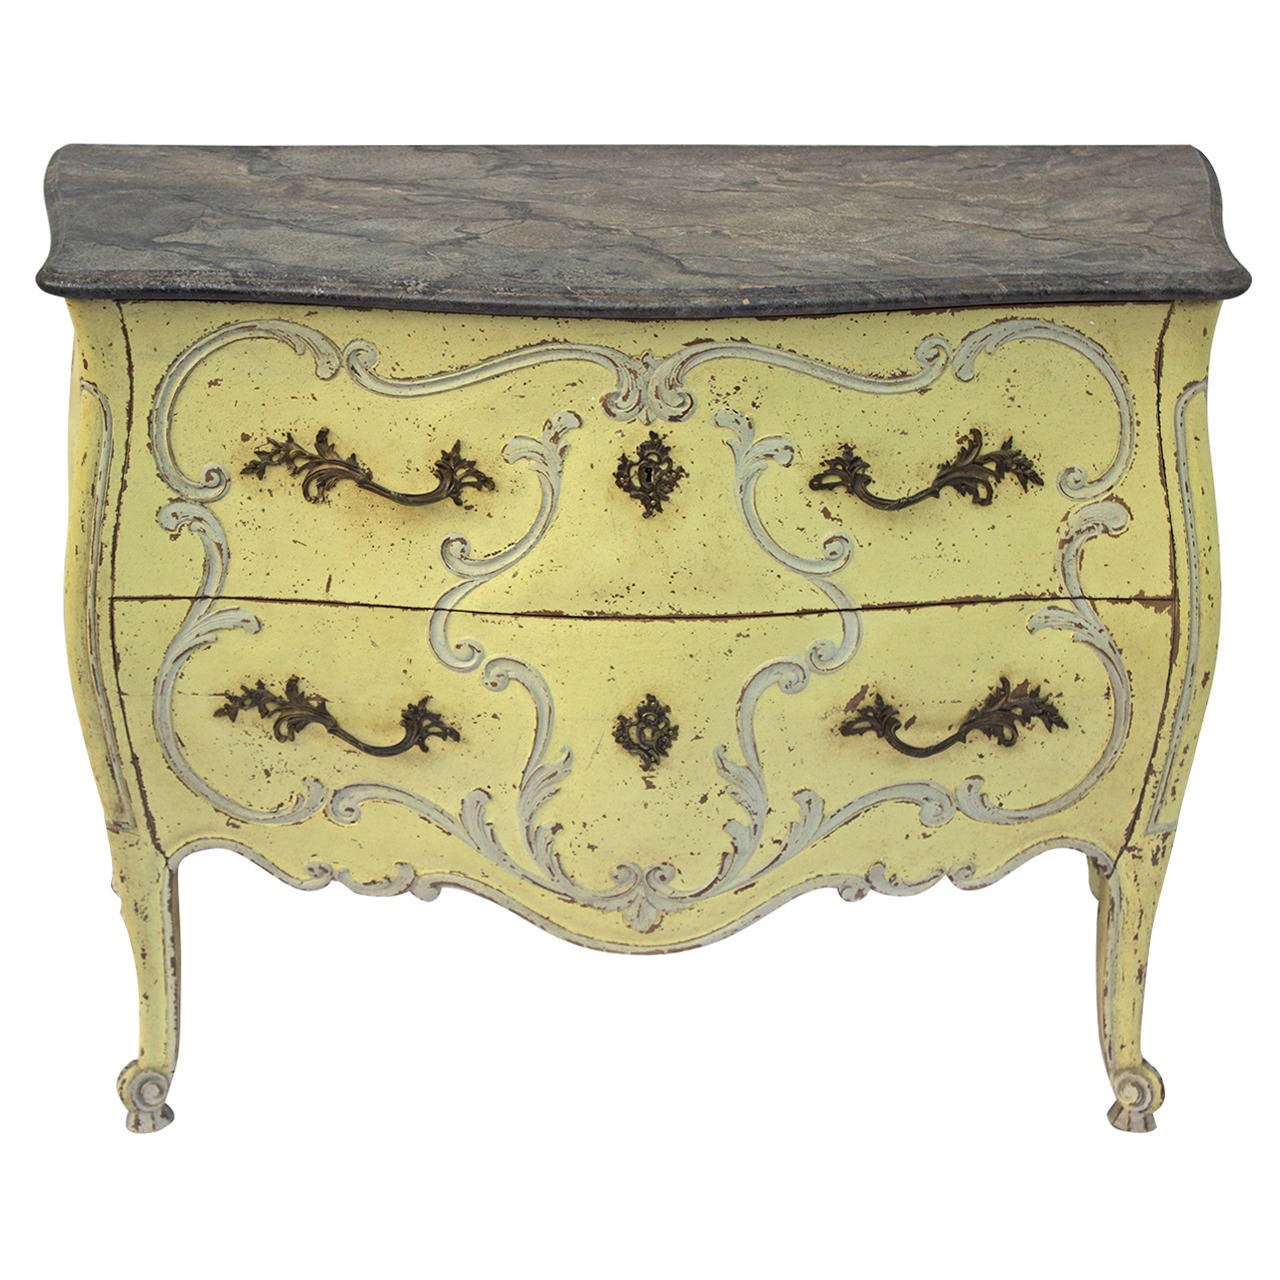 Commode furniture - French Painted Louis Xv Style Bombe Commode 1